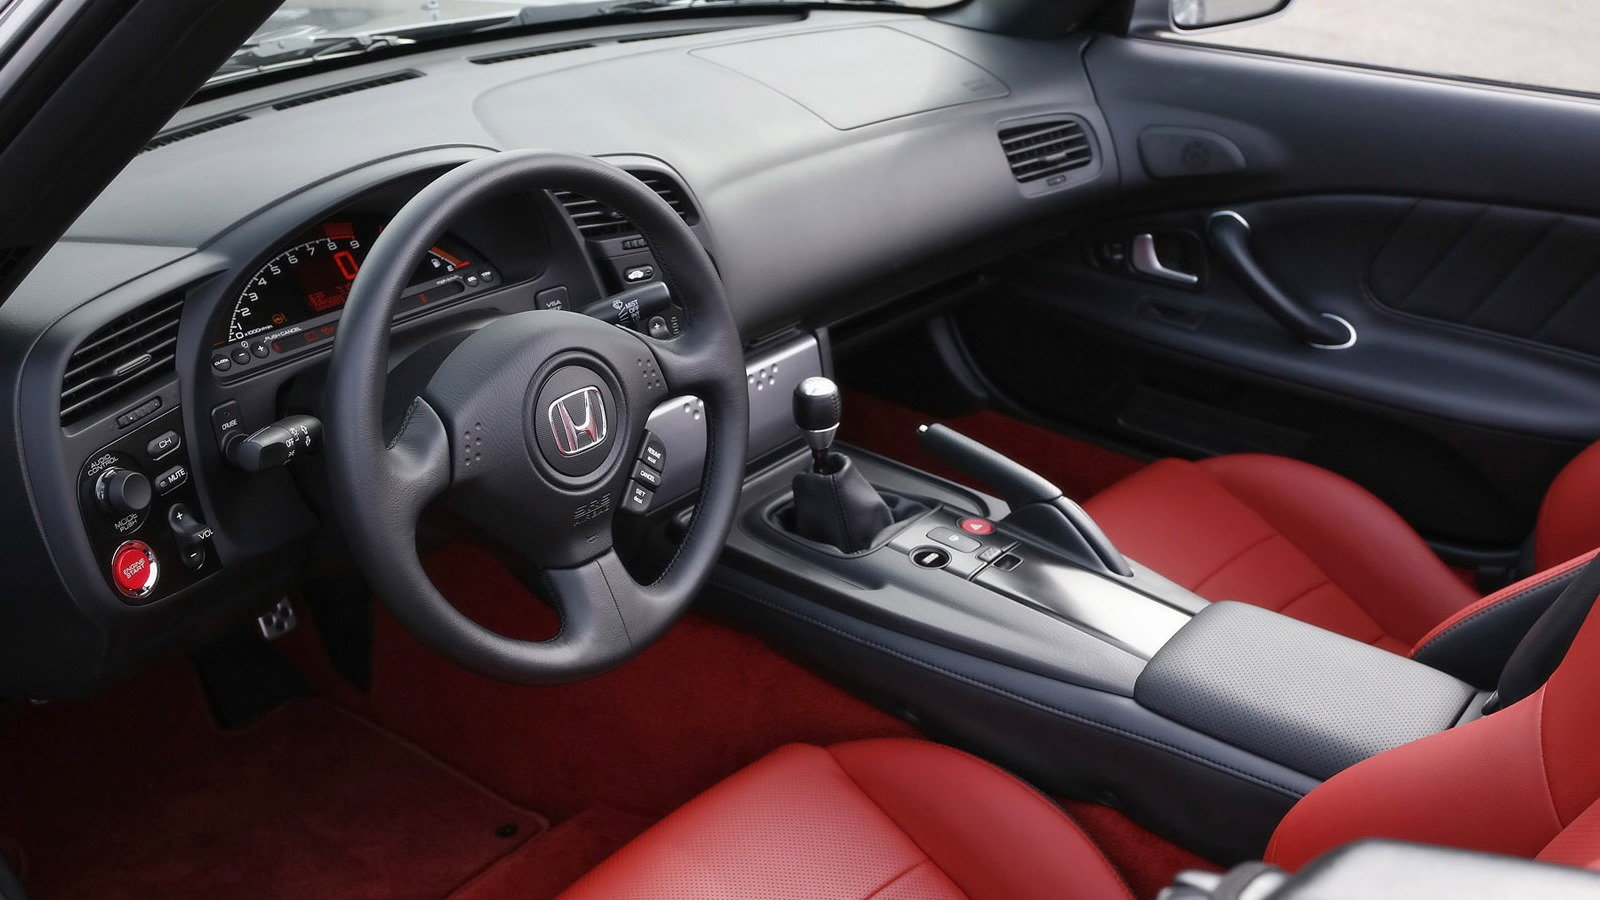 5. Other car interiors are doing it wrong